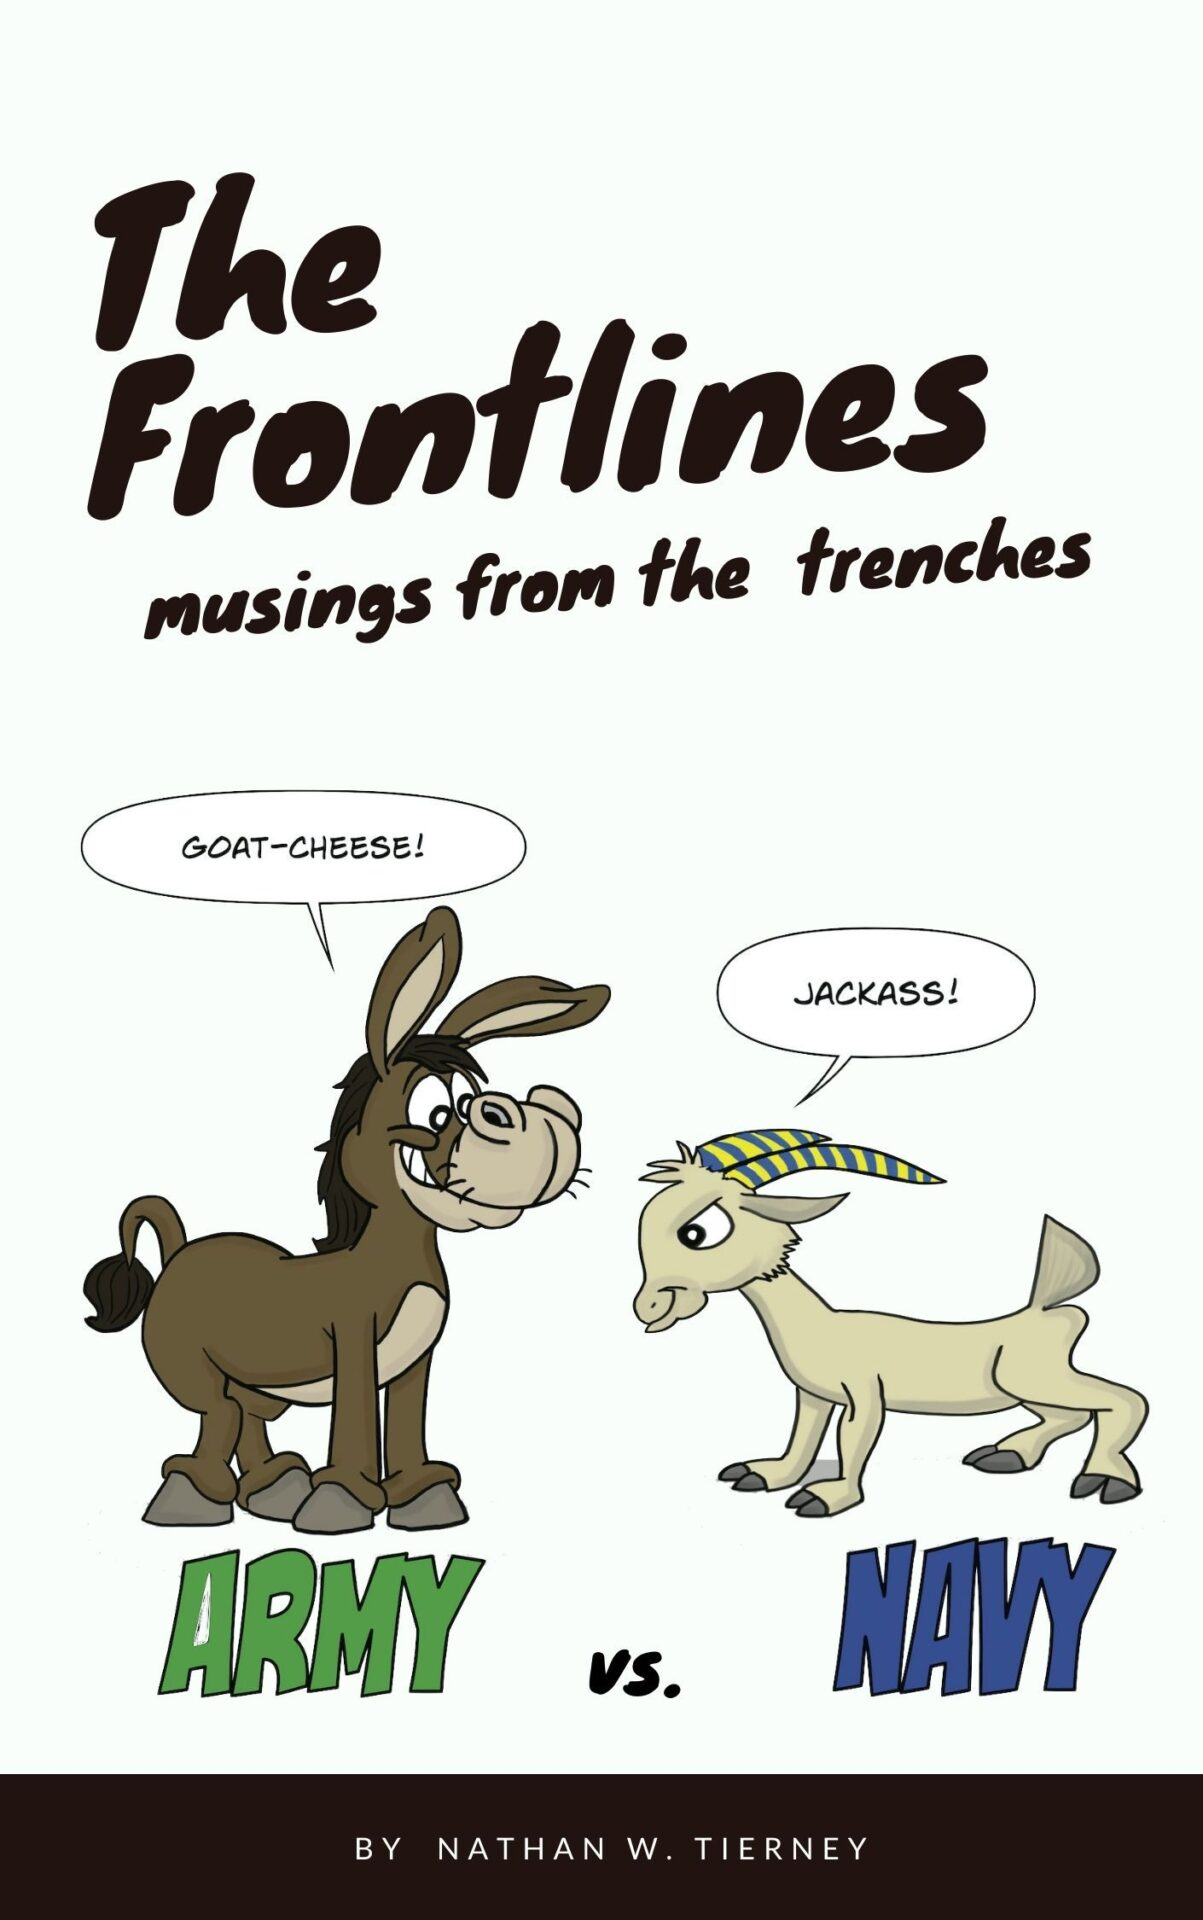 The Frontlines comic book is humorous musings of life in the Army and Navy.